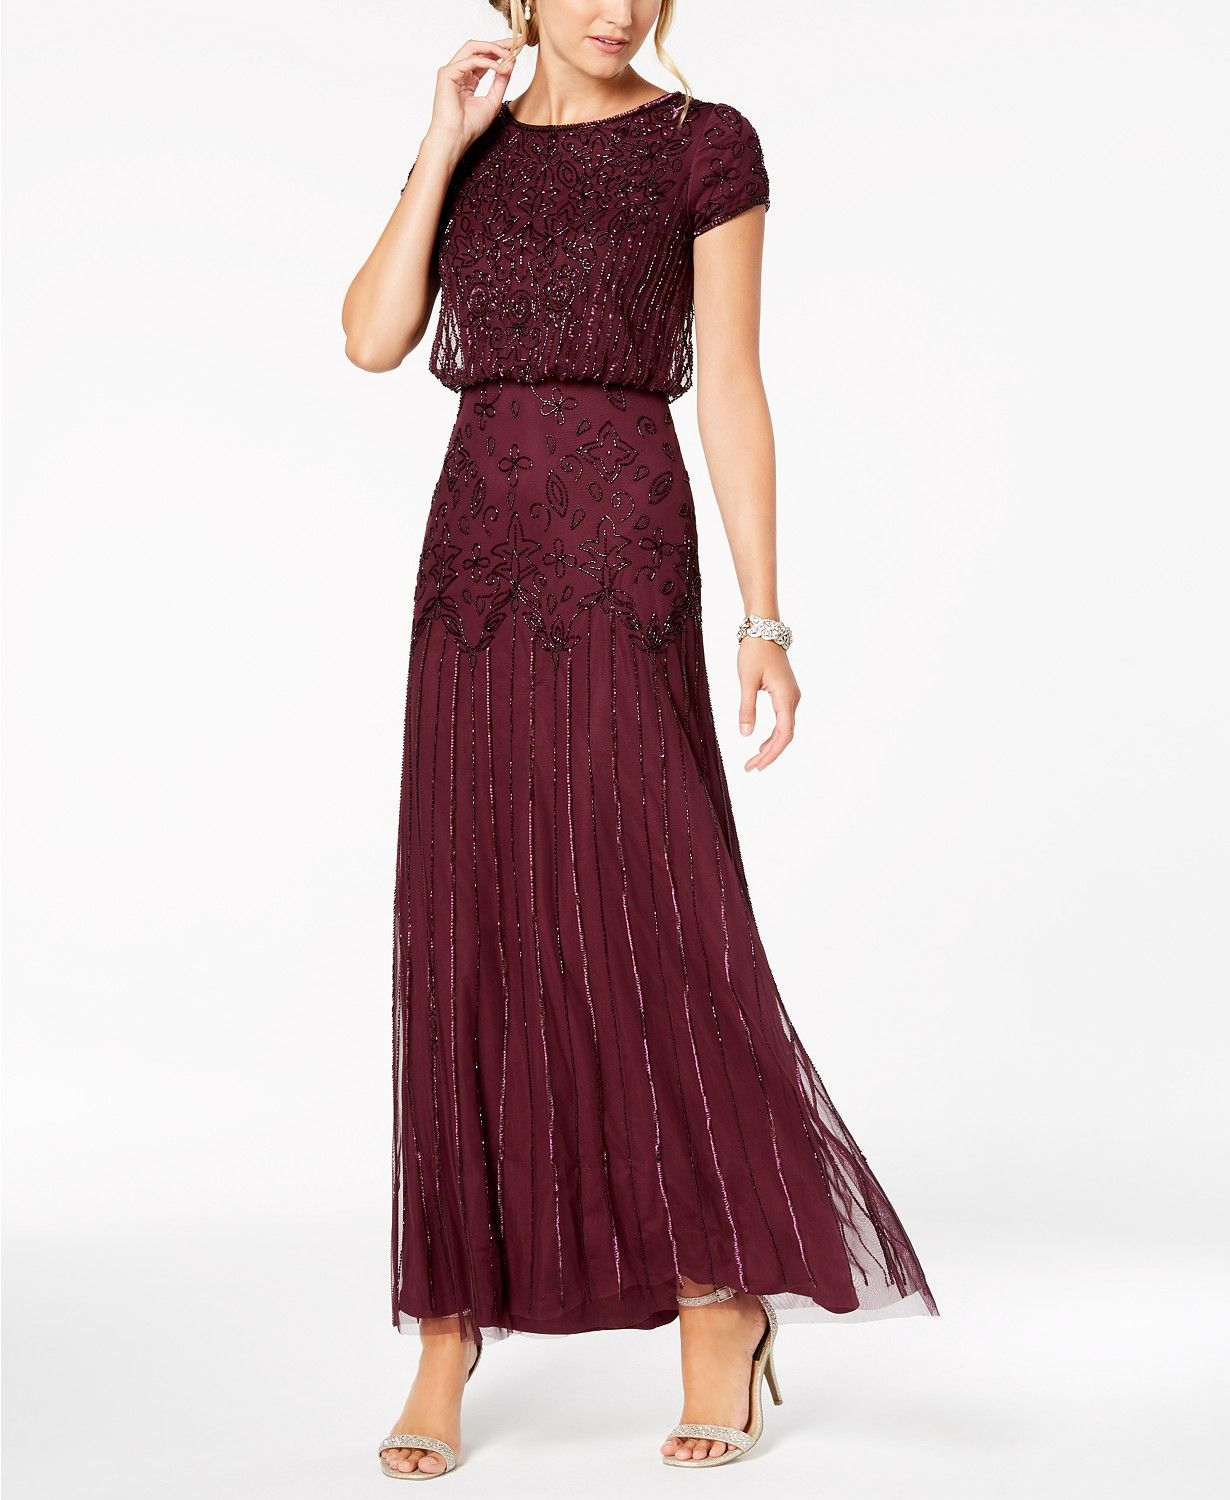 faf1427be85 Adrianna Papell Petite Beaded Blouson Gown - Dresses - Petites - Macy s